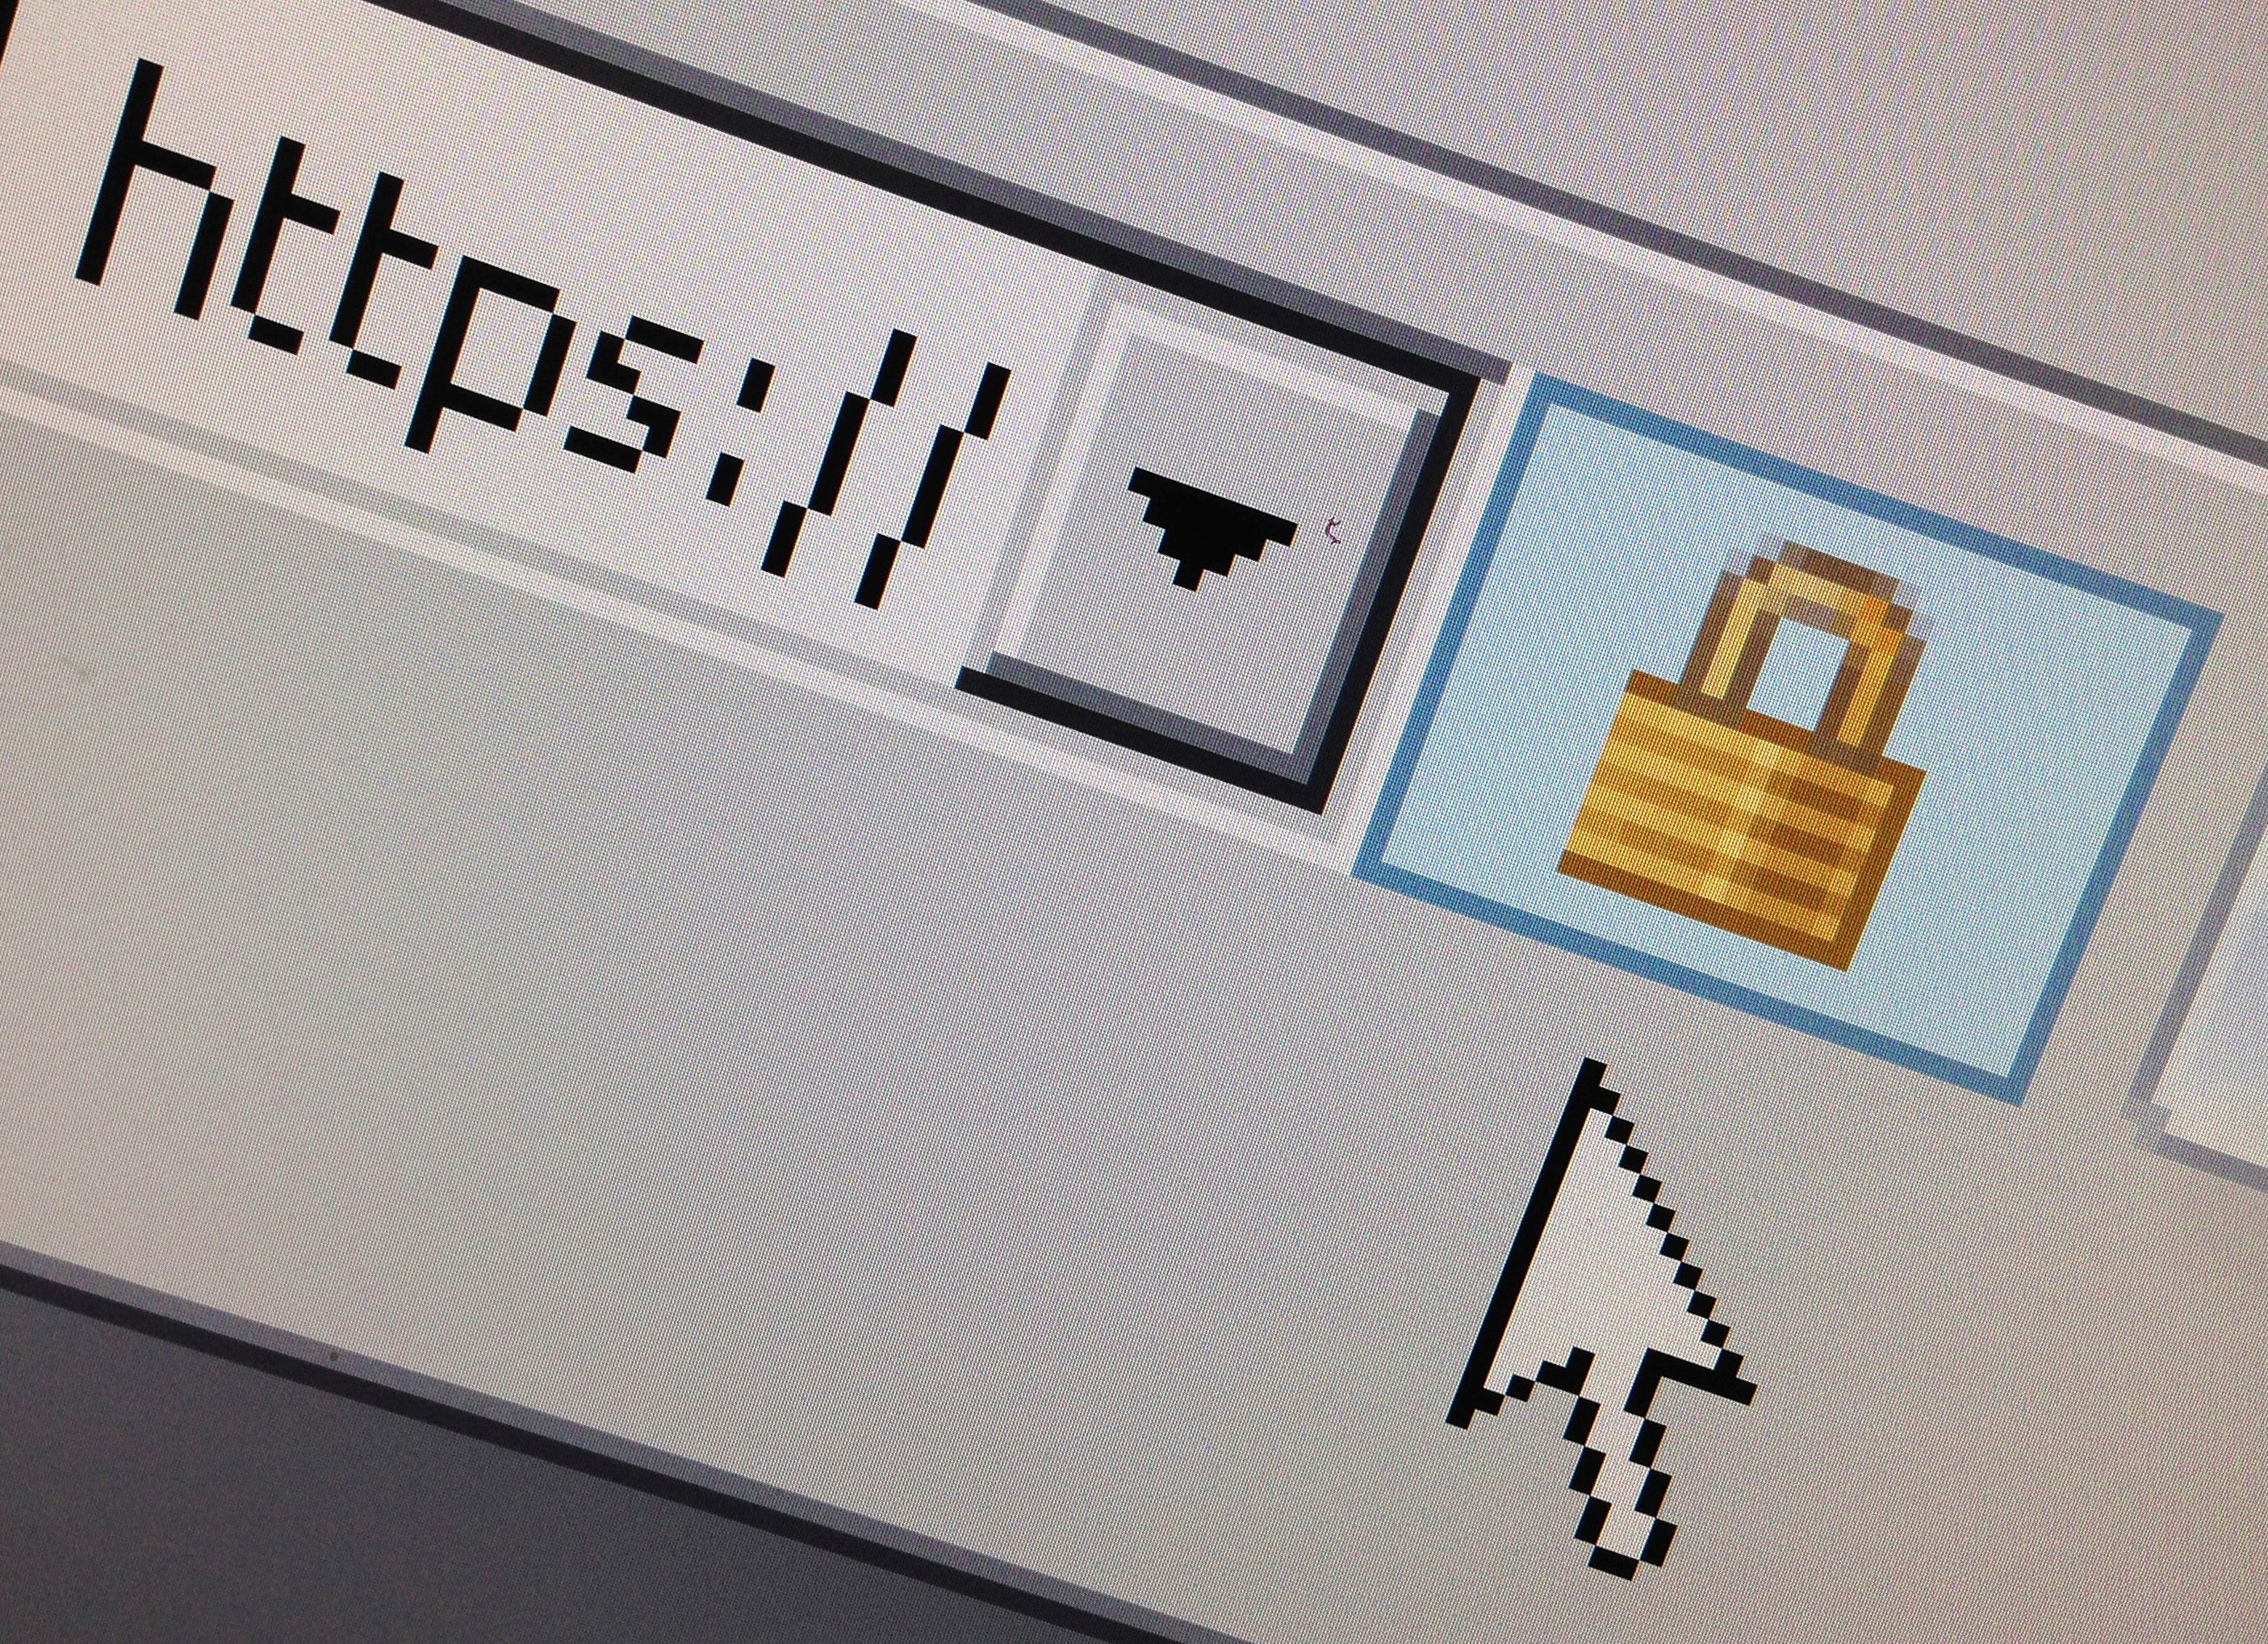 A computer mouse hovers over a lock icon signifying an encrypted internet connection on a web browser.